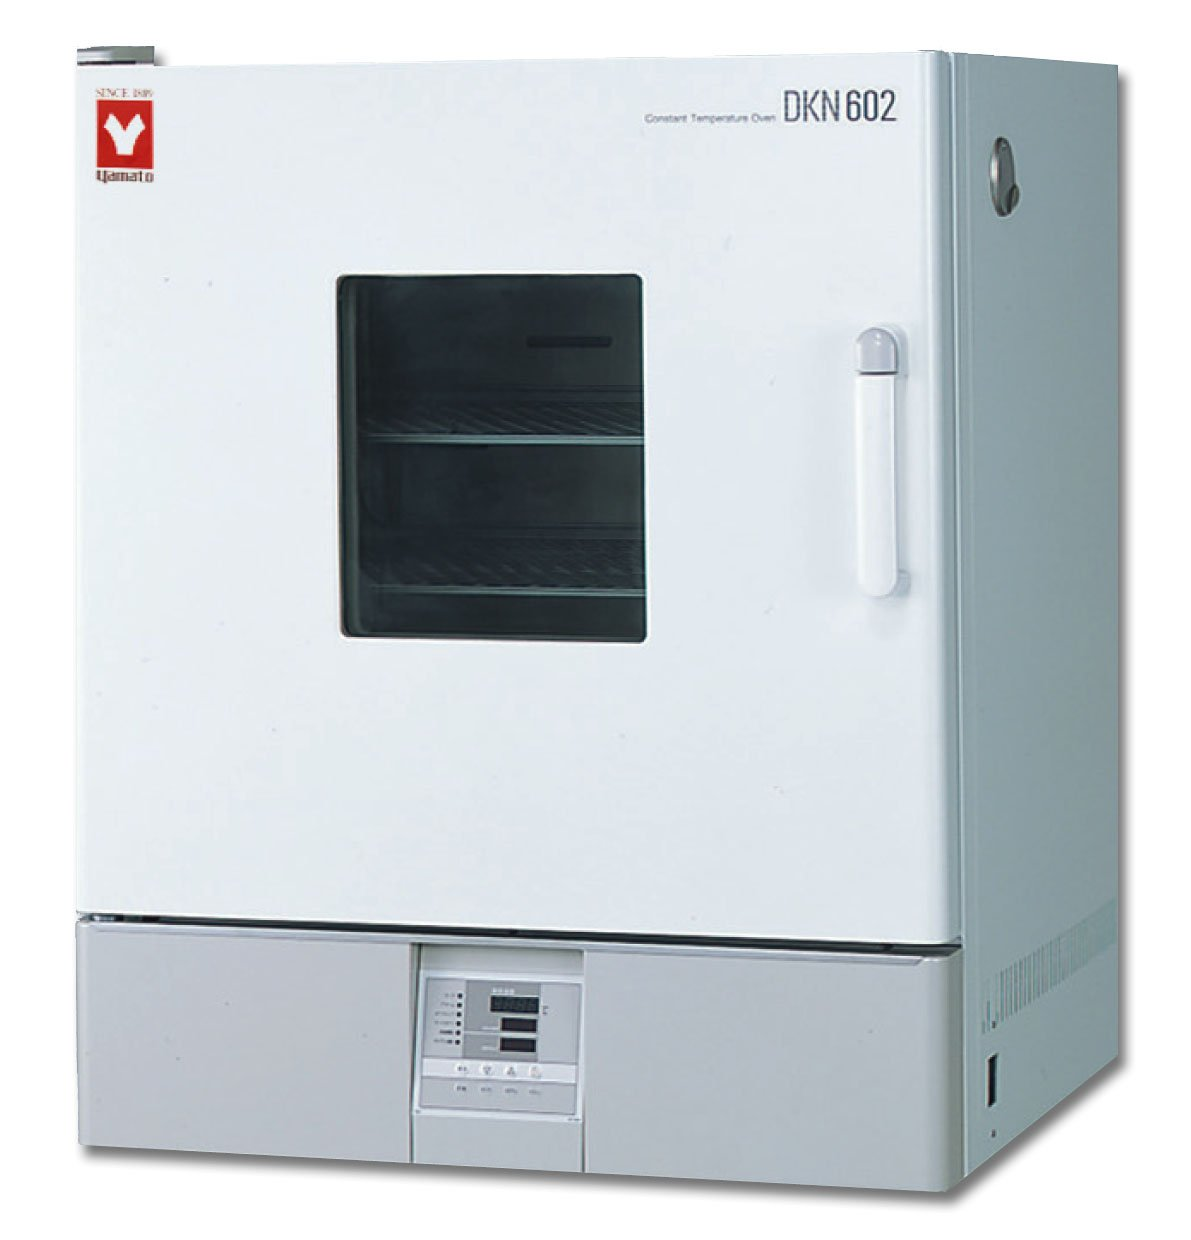 Selling and selling Yamato DKN-602 Programmable High quality new Mechanical Convection F 5.3 Oven Cu